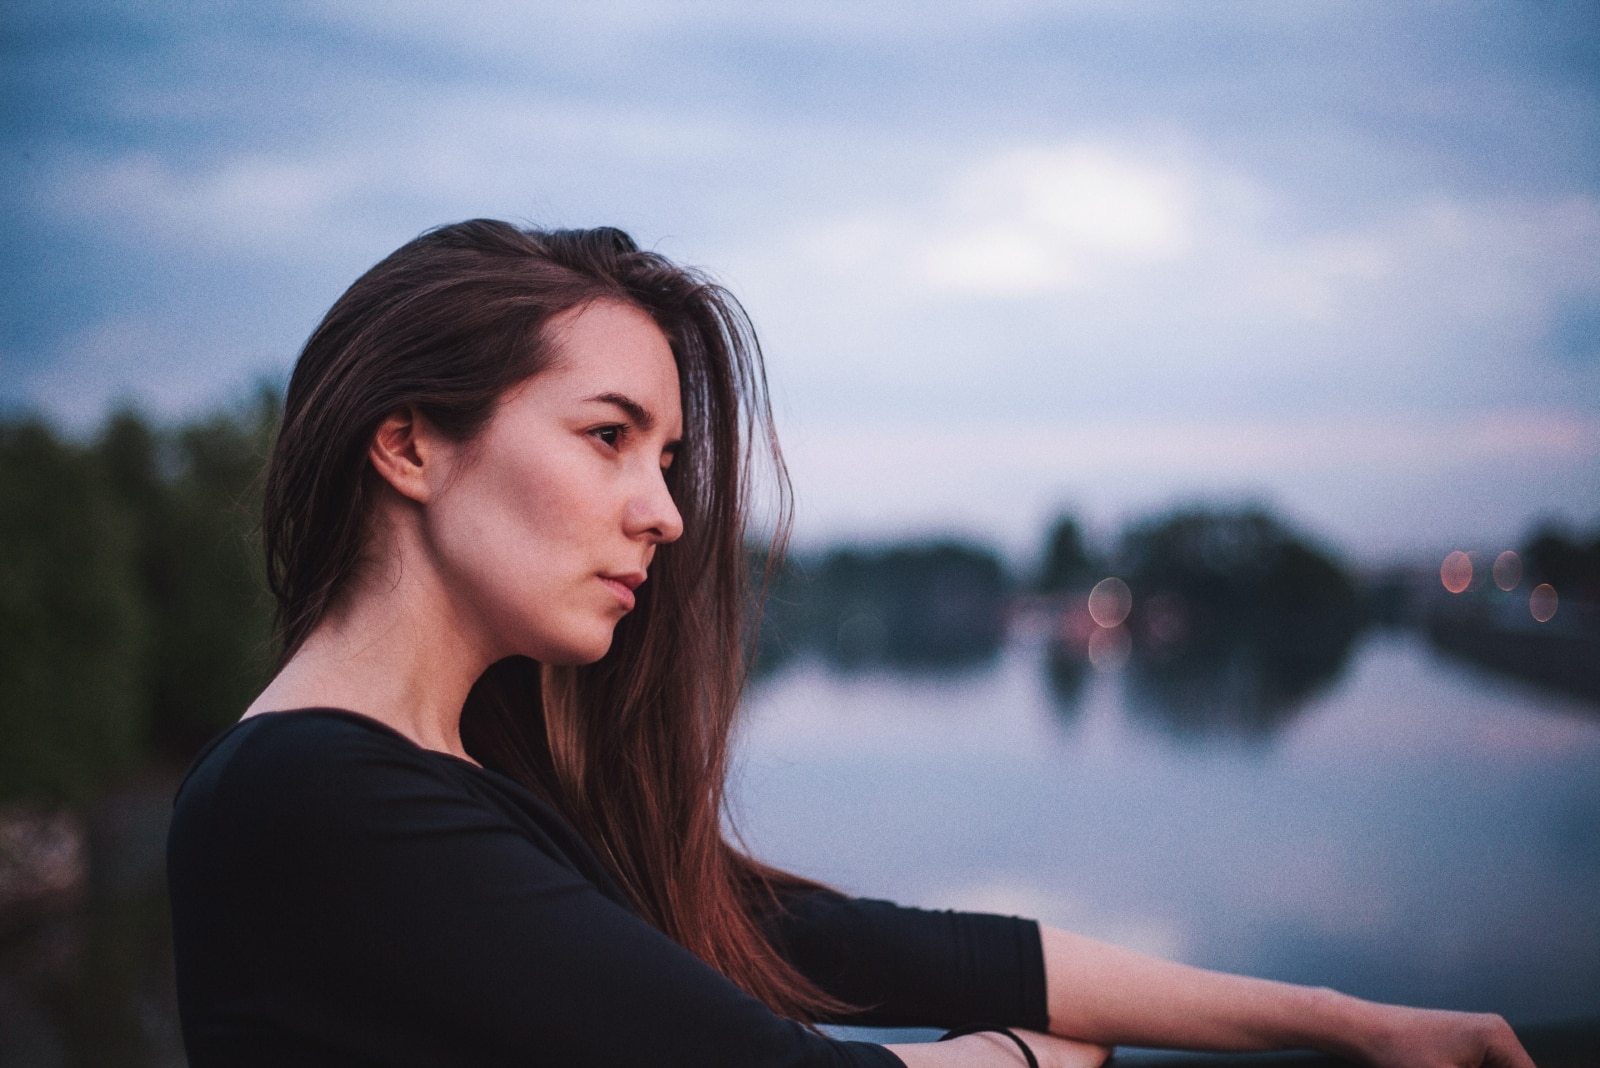 pensive woman in black top standing near water